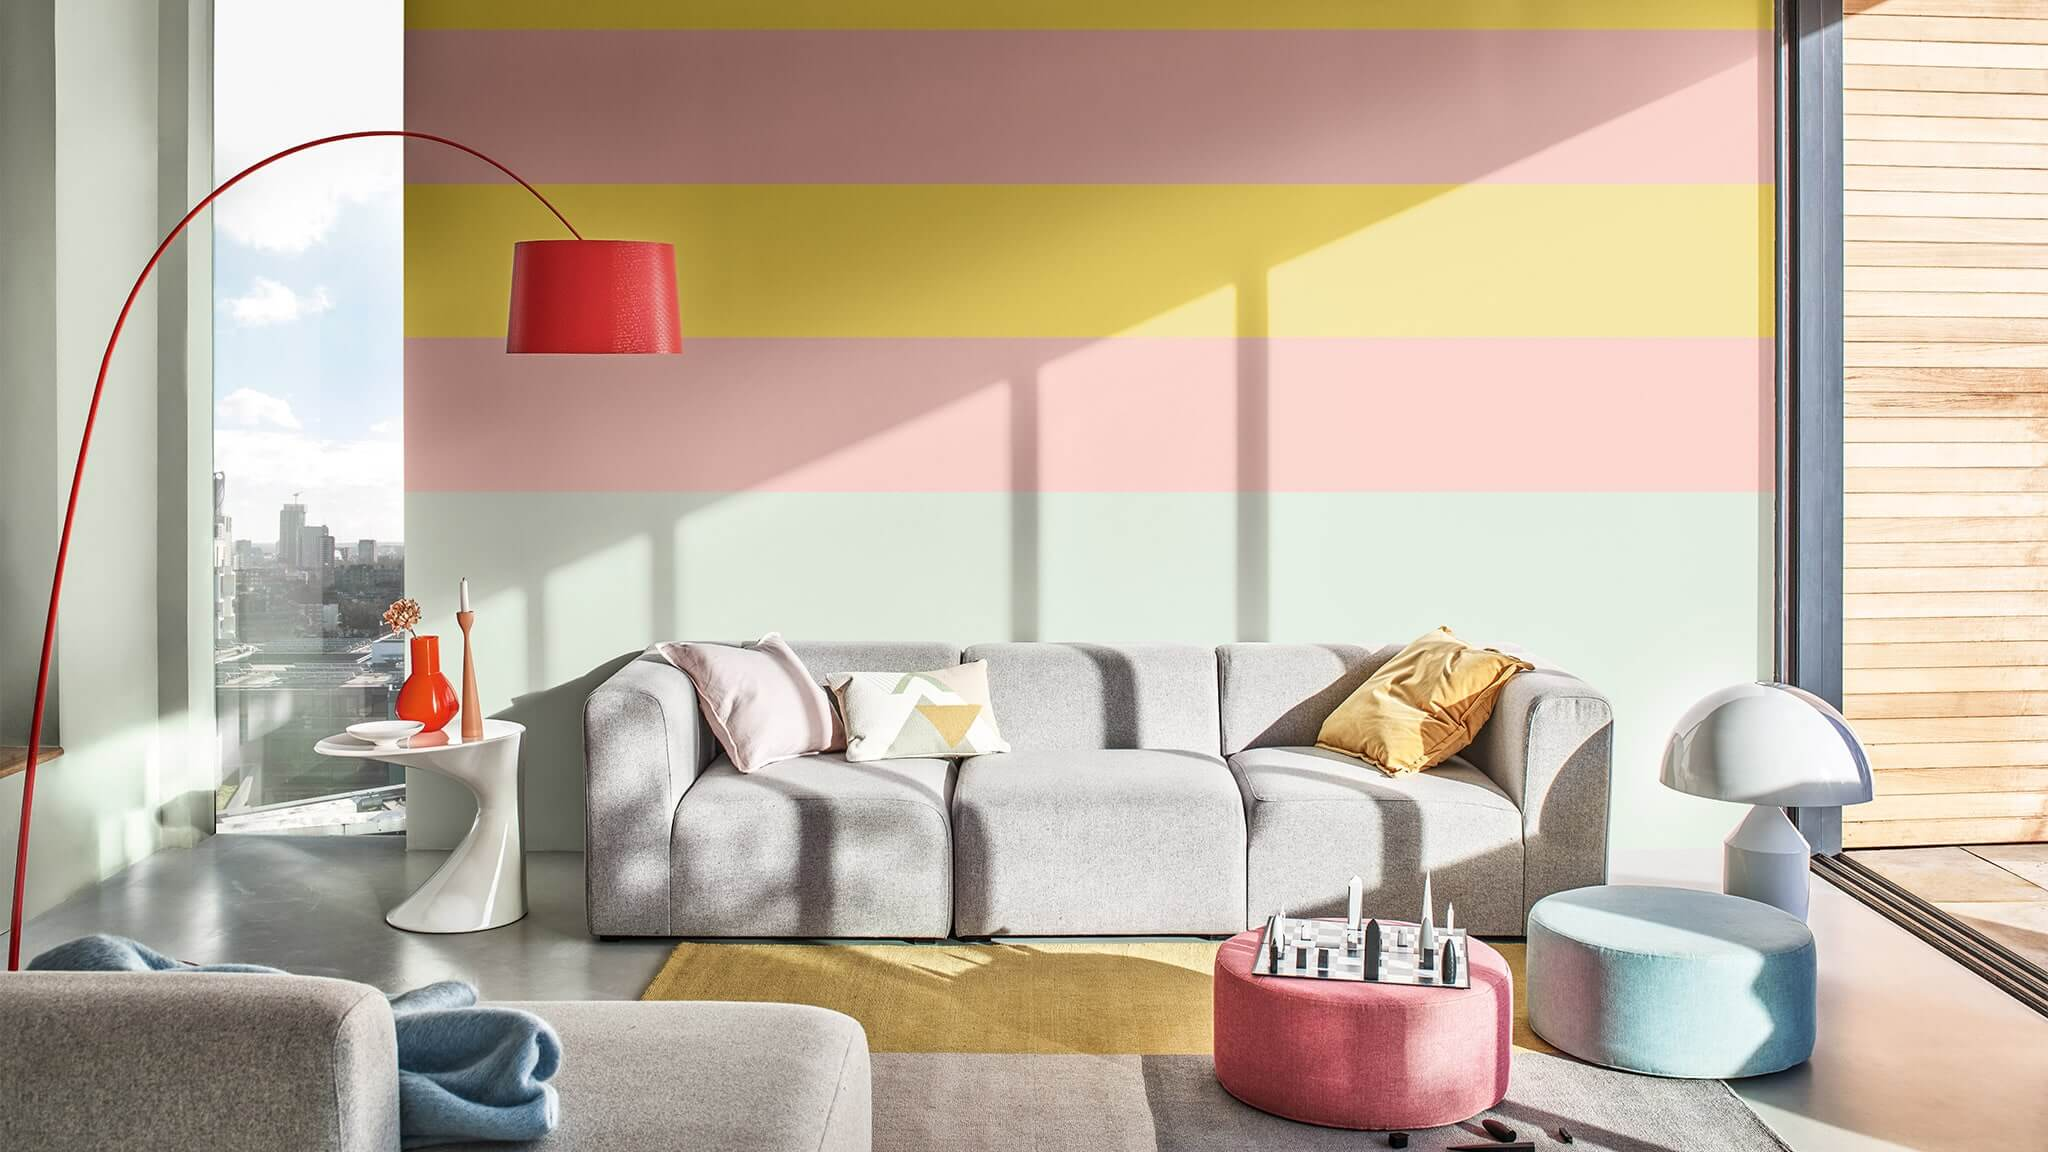 dulux-colour-futures-colour-of-the-year-2020-a-home-for-play-livingroom-inspiration-south-africa-2.jpg